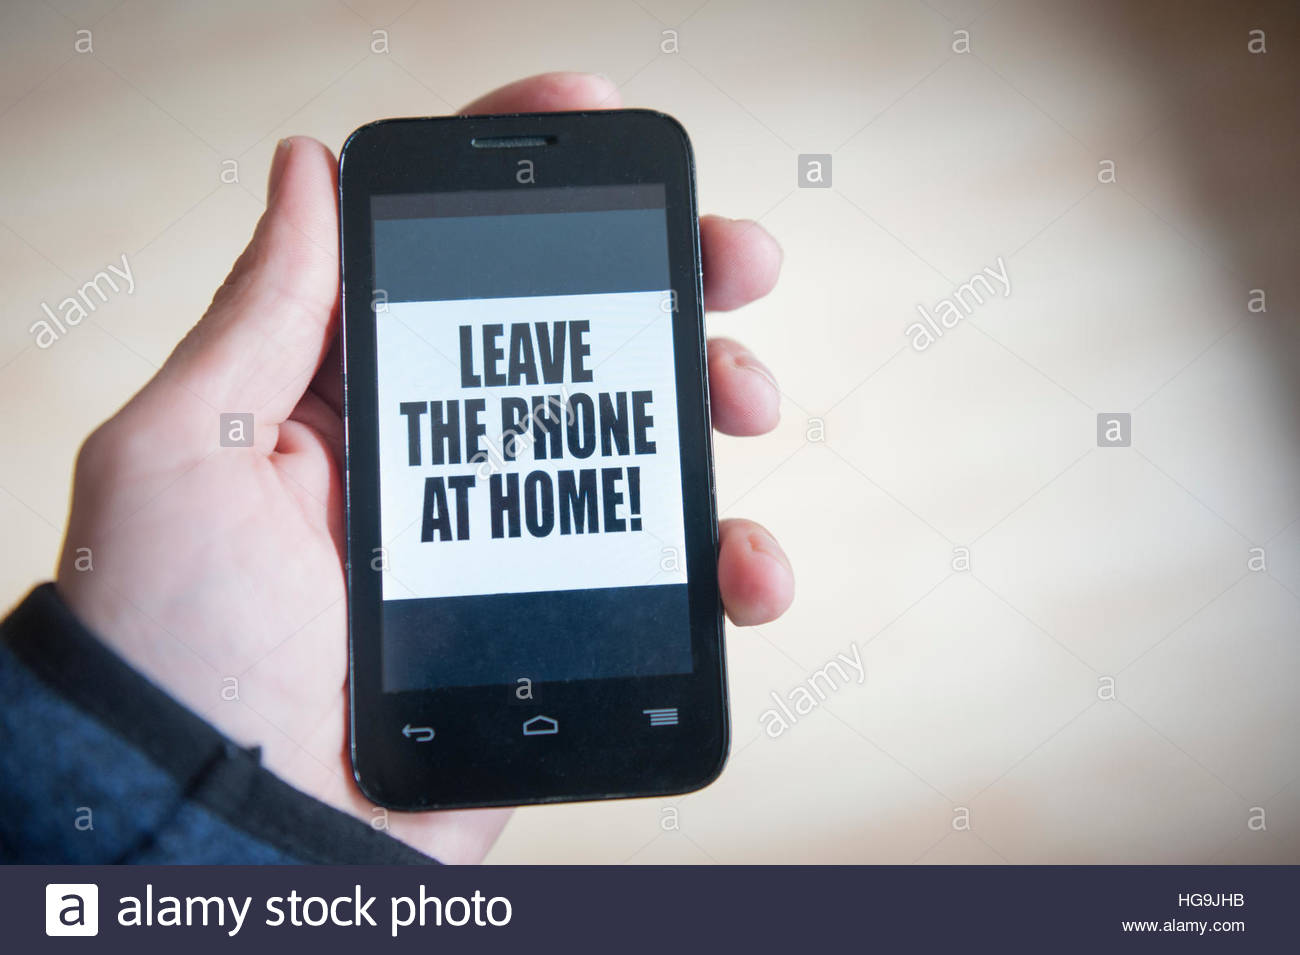 Concept - Mobile telephone addiction - Leave the phone at home! - Stock Image